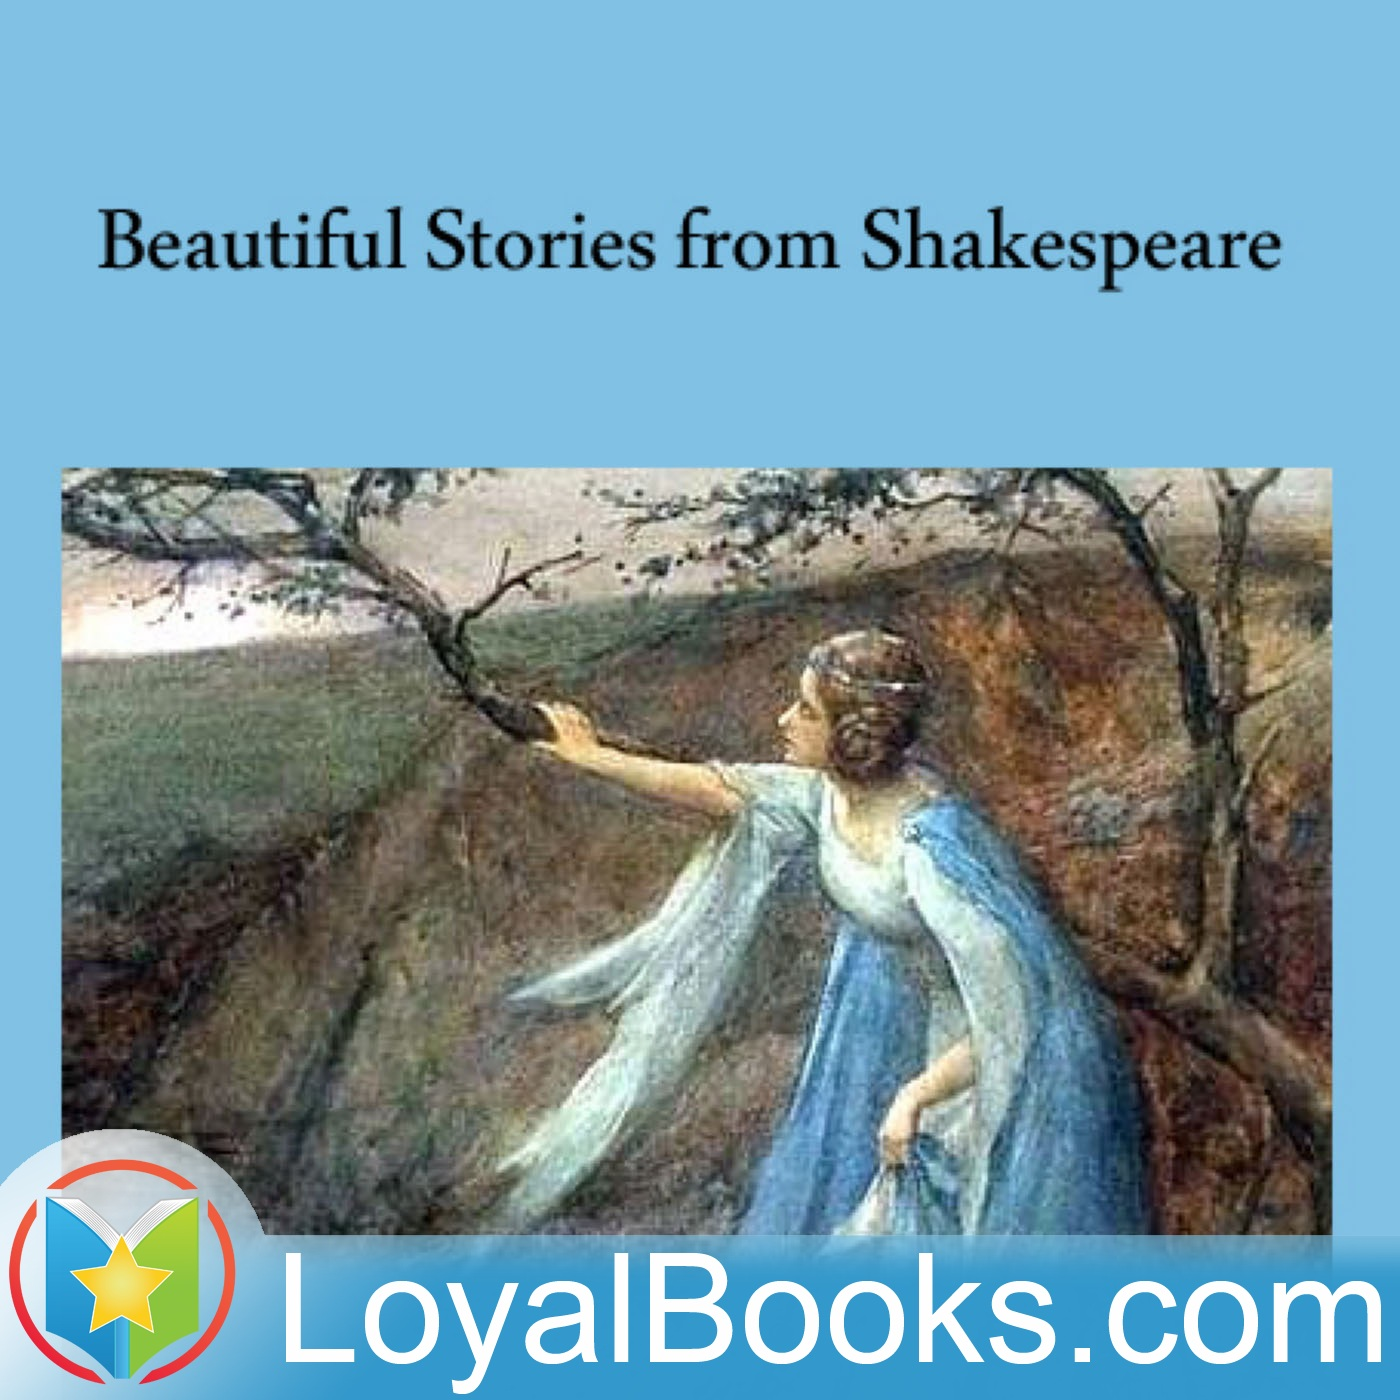 <![CDATA[Beautiful Stories from Shakespeare by Edith Nesbit]]>